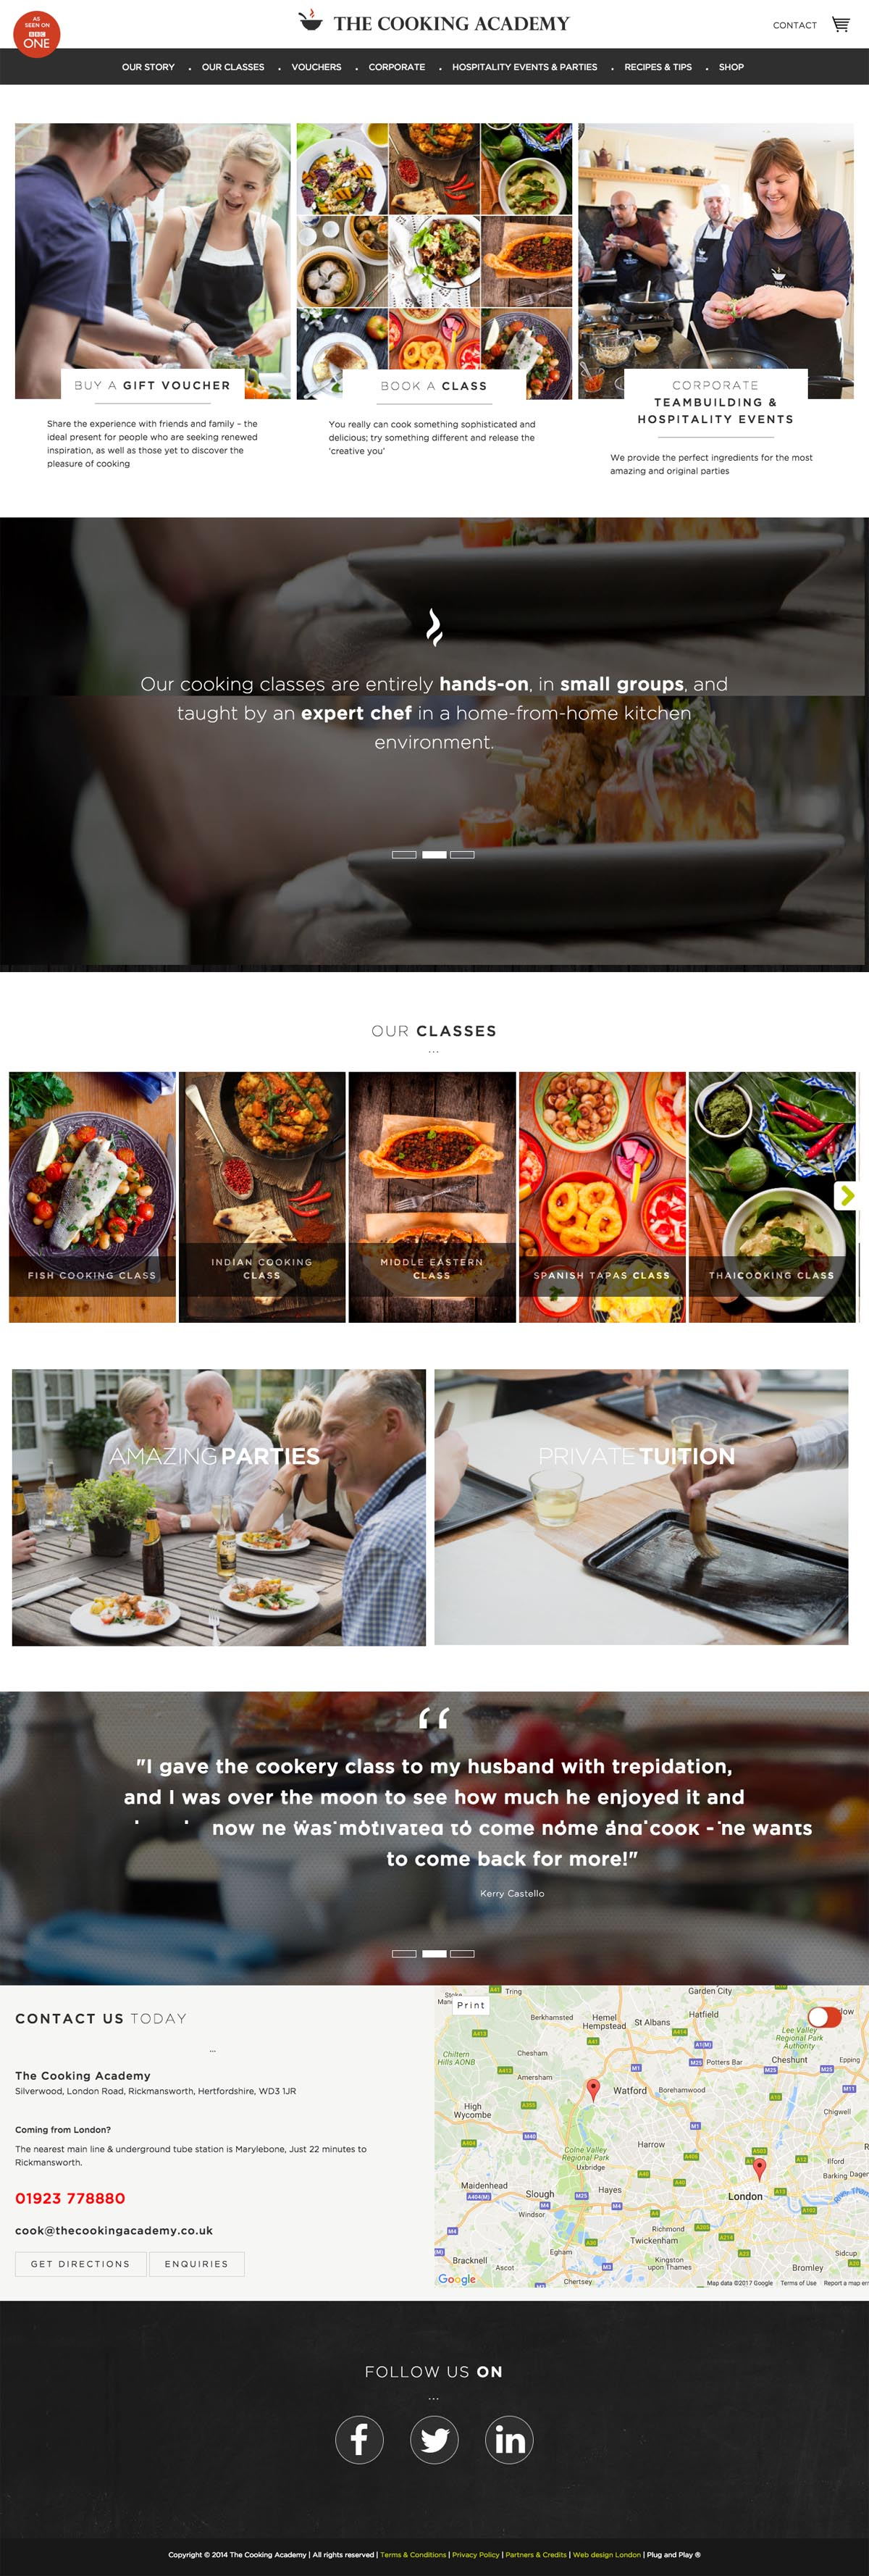 eCommerce website: The Cooking Academy